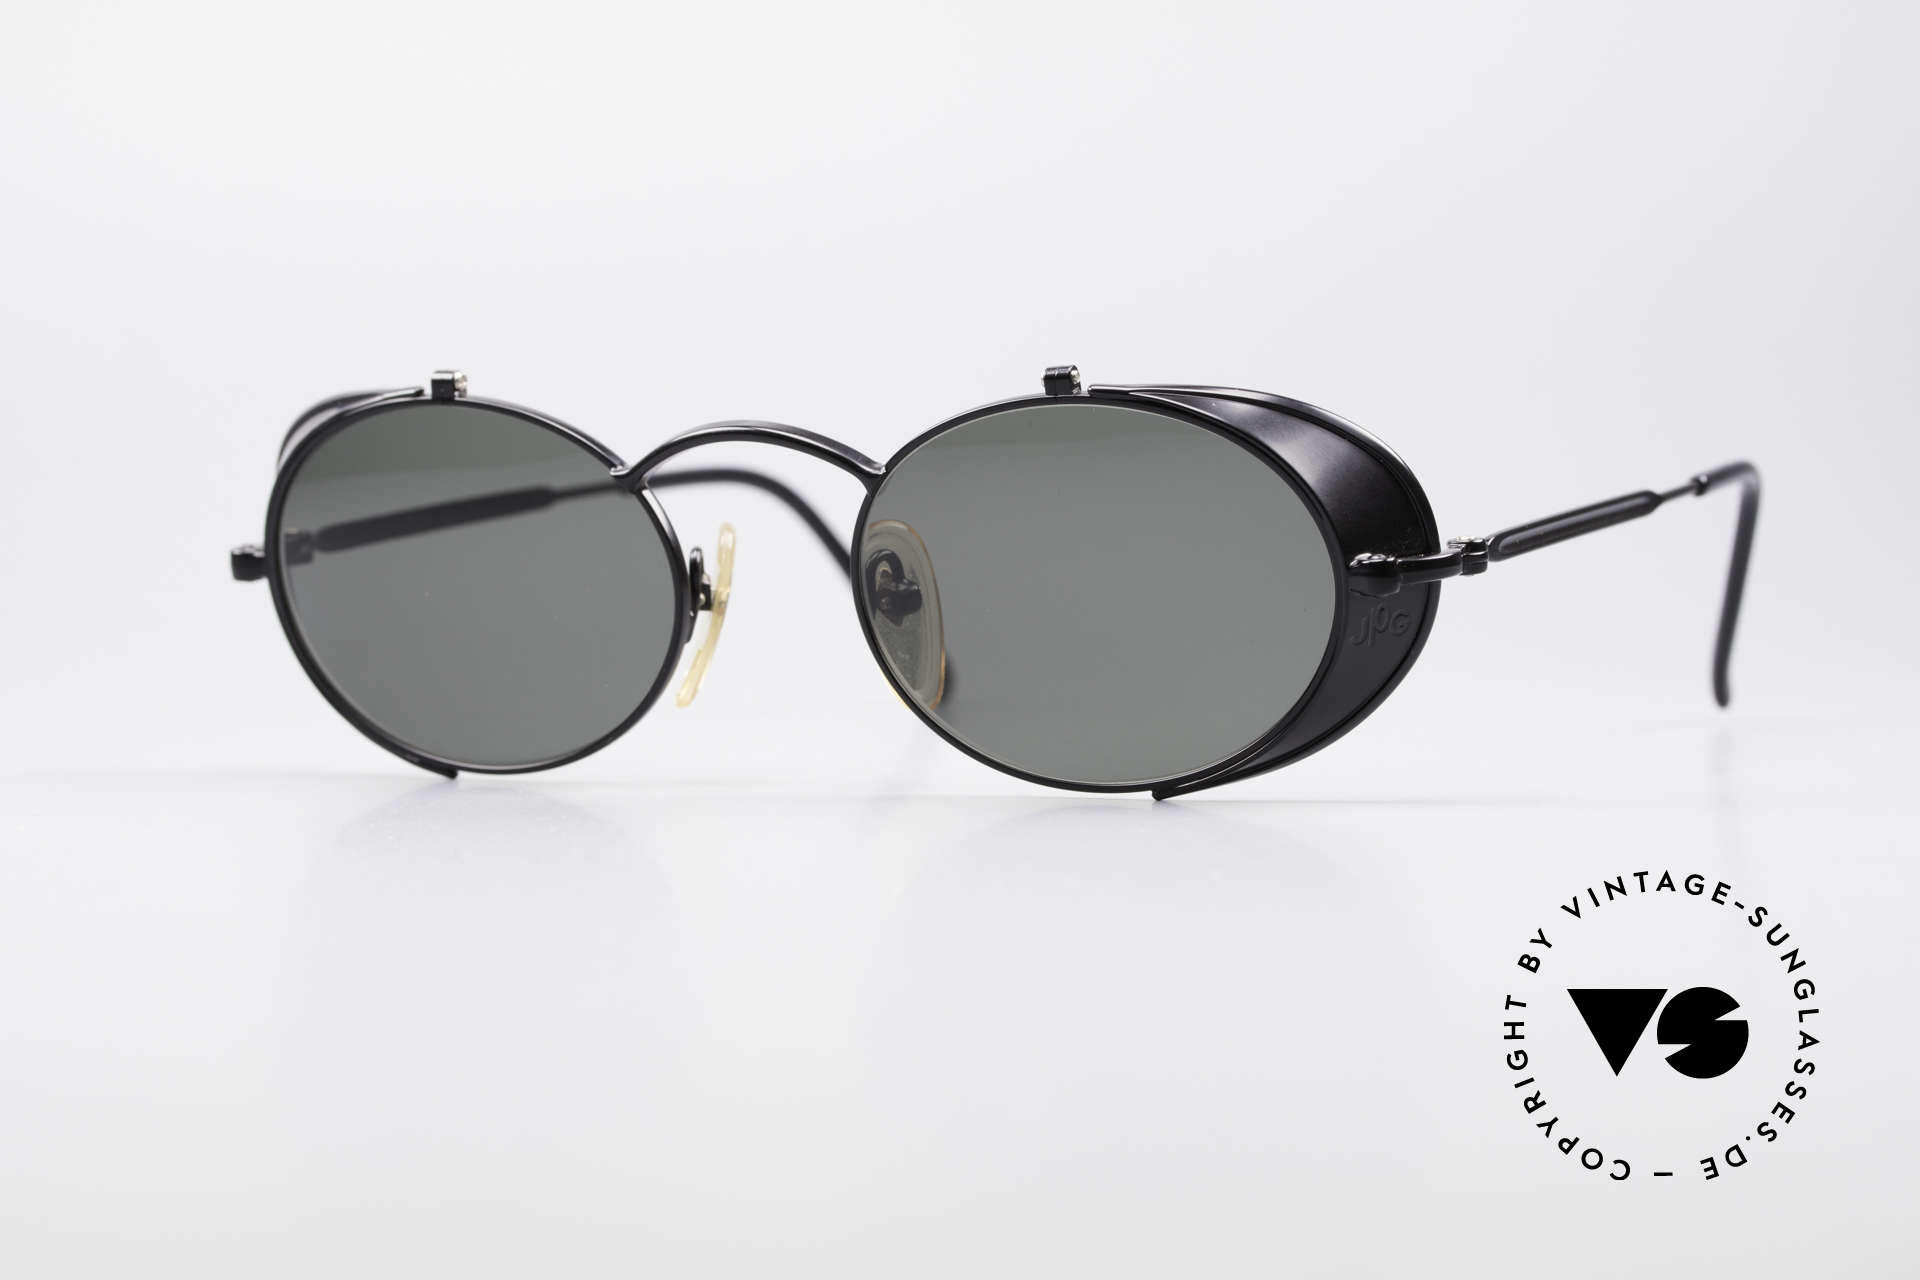 Jean Paul Gaultier 56-1175 JPG Side Shields Sunglasses, vintage Gaultier designer sunglasses from the mid 90's, Made for Men and Women